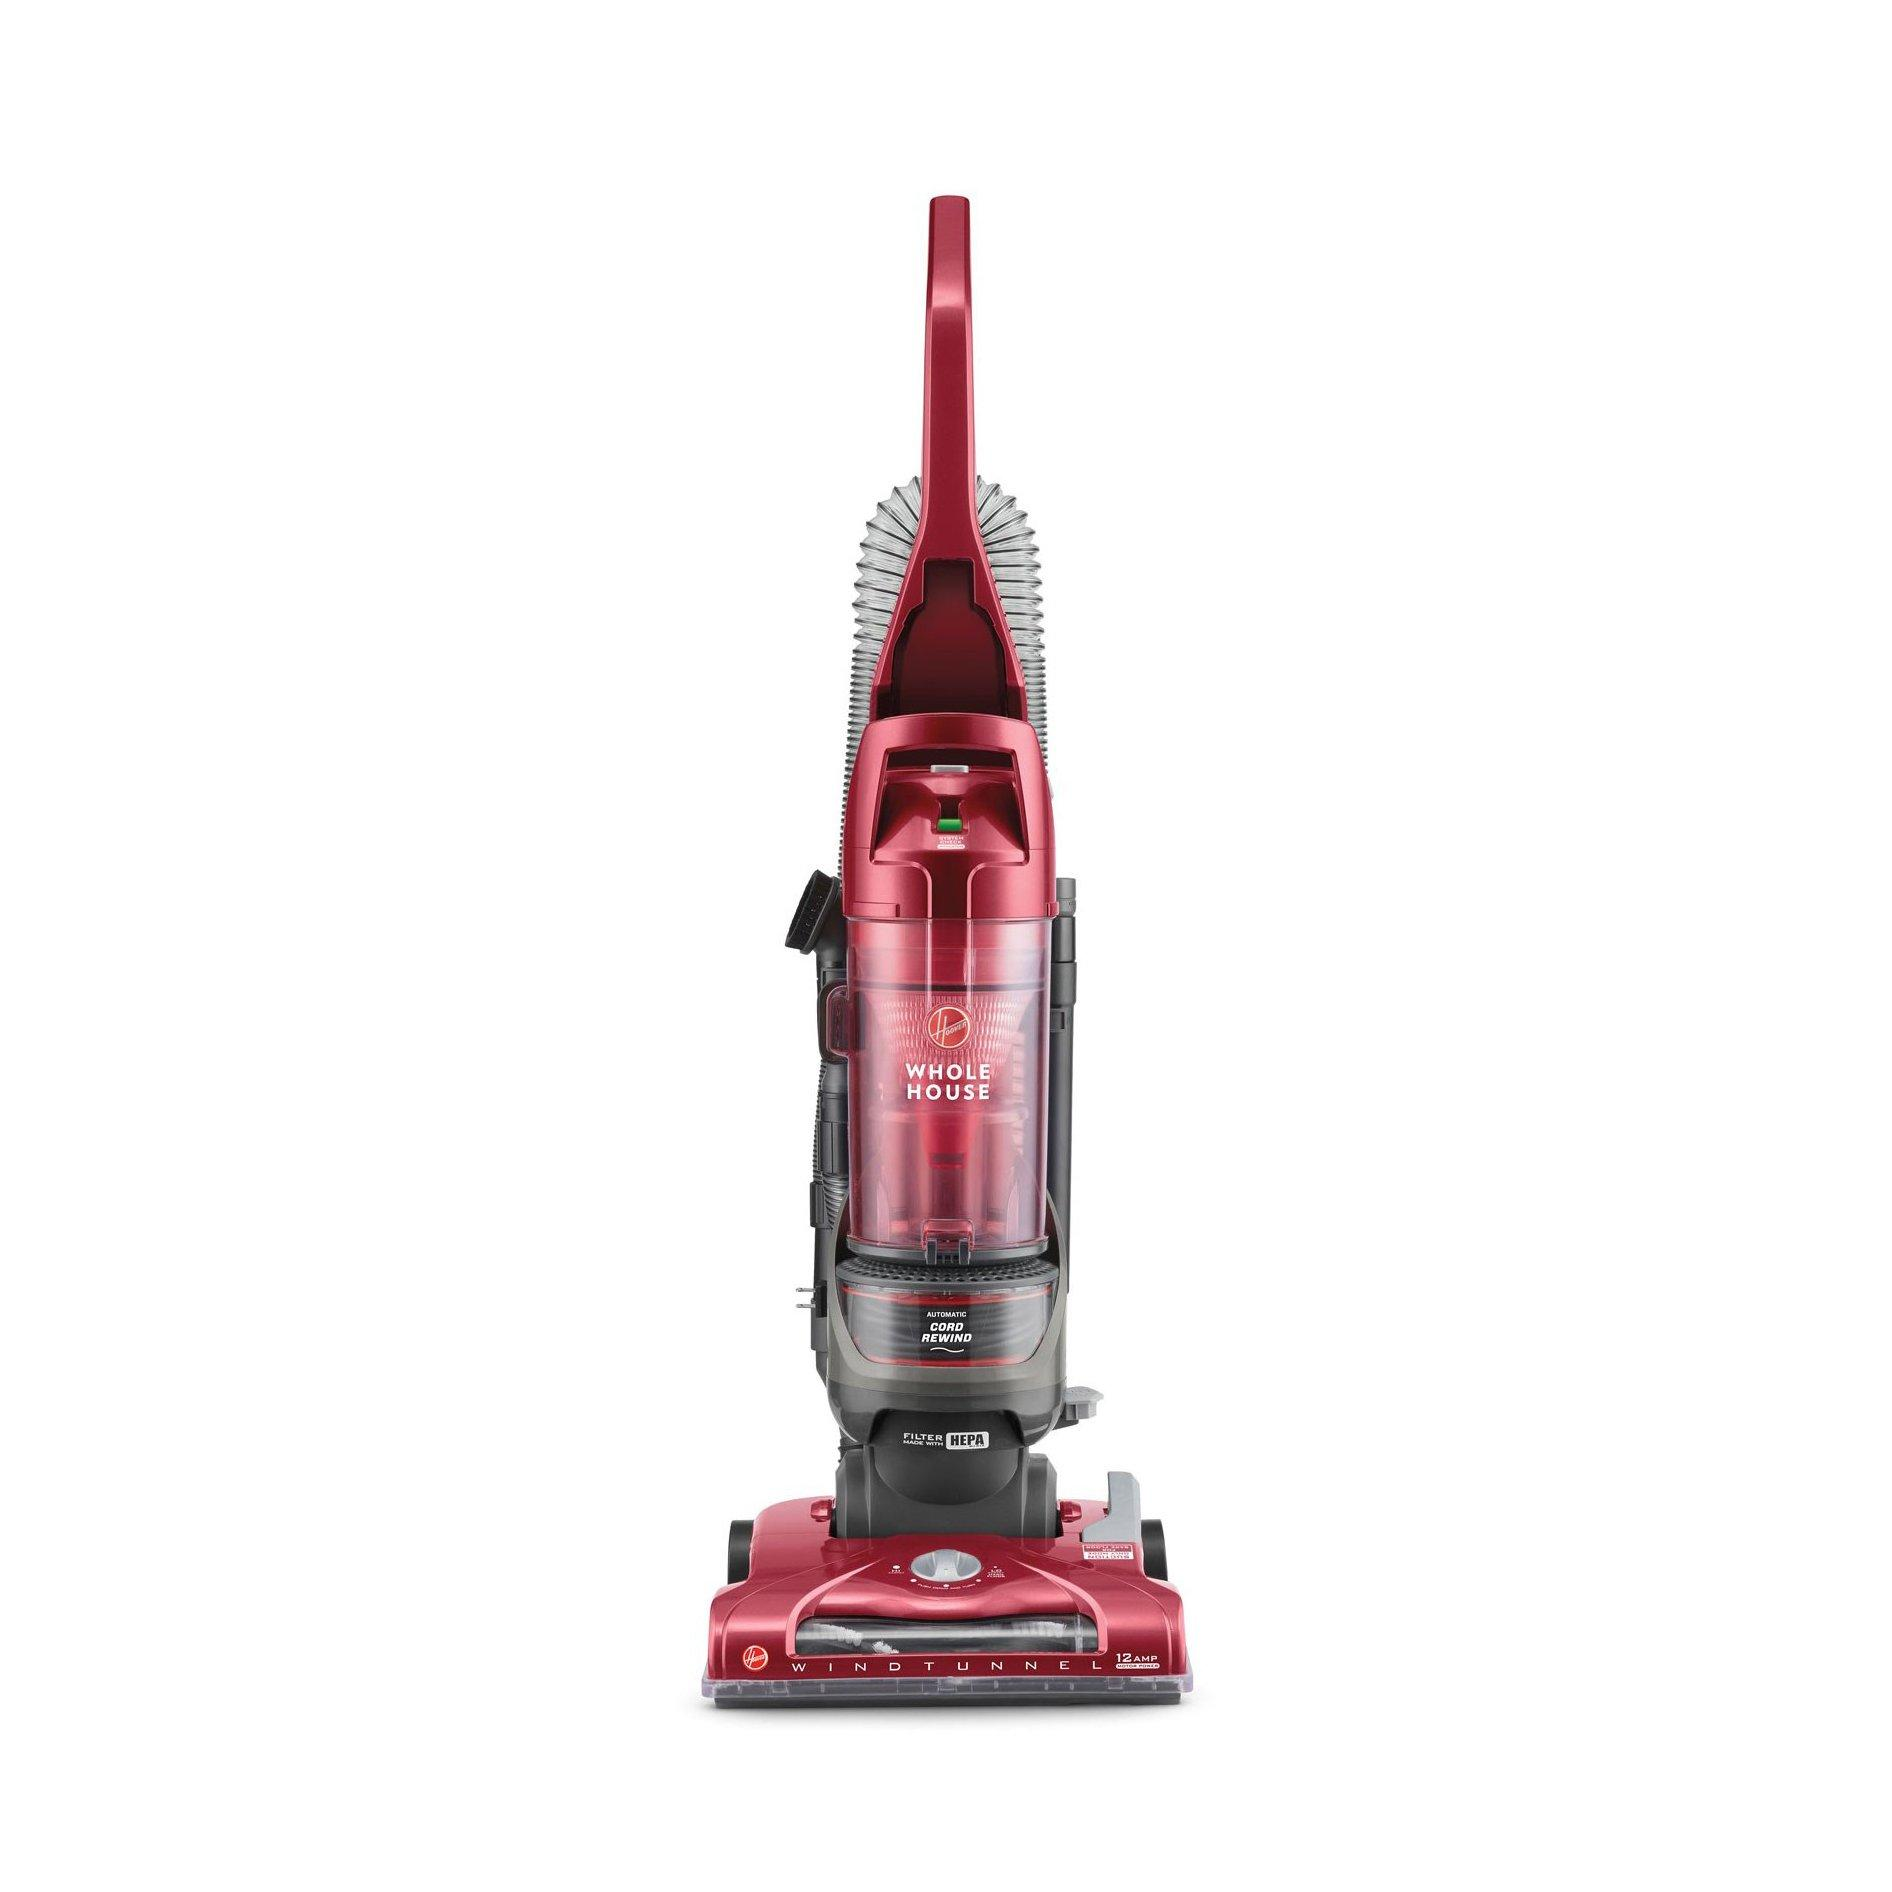 Reconditioned Whole House Upright Vacuum